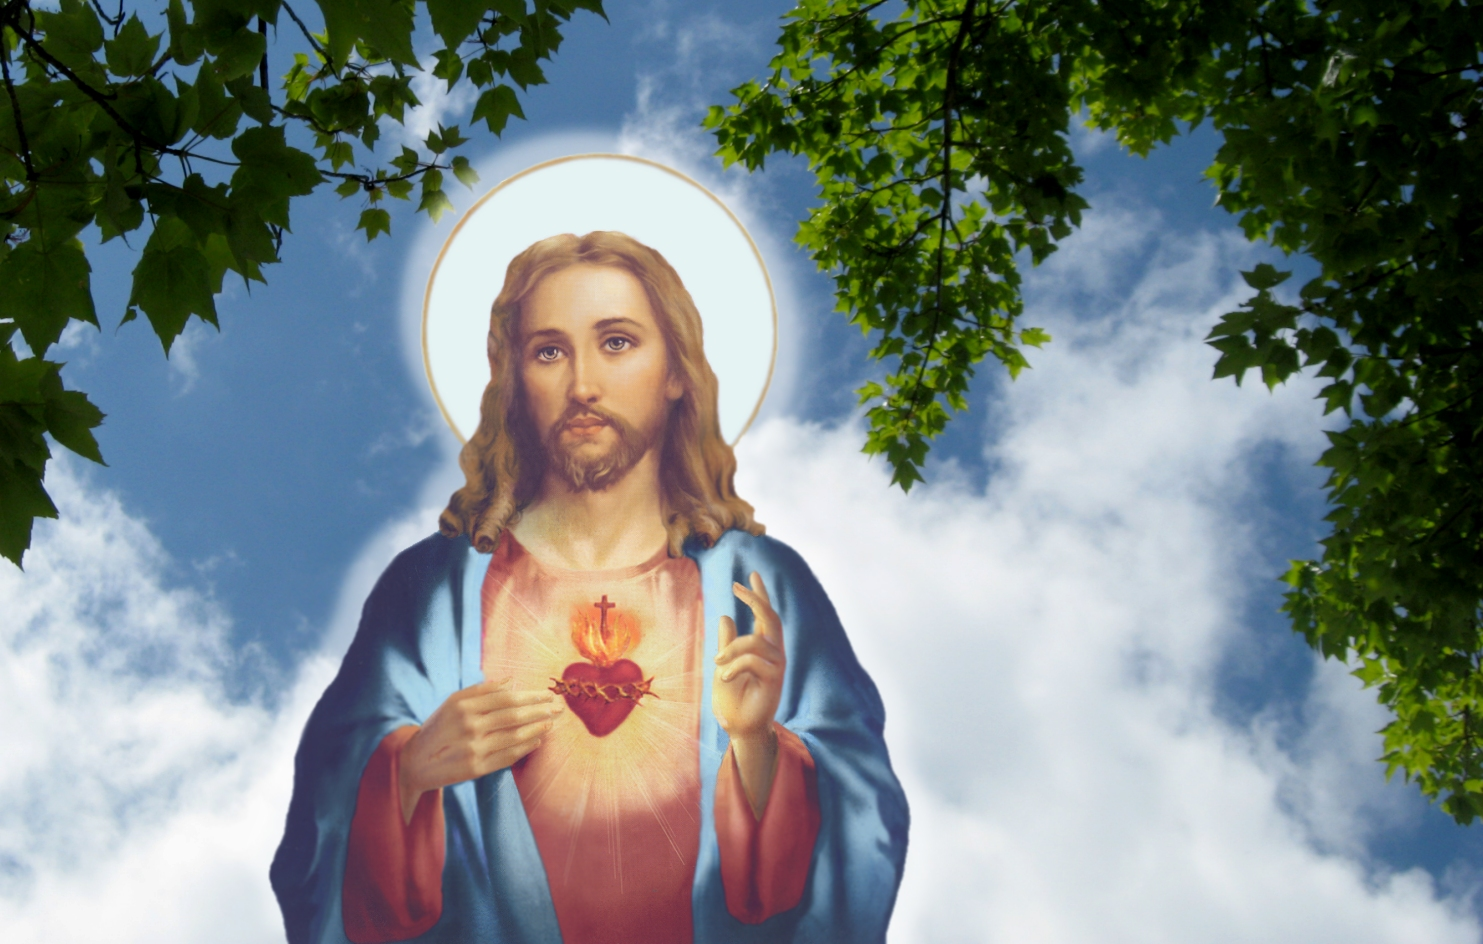 sacred heart of jesus Wallpaper and Background Image 1483x944